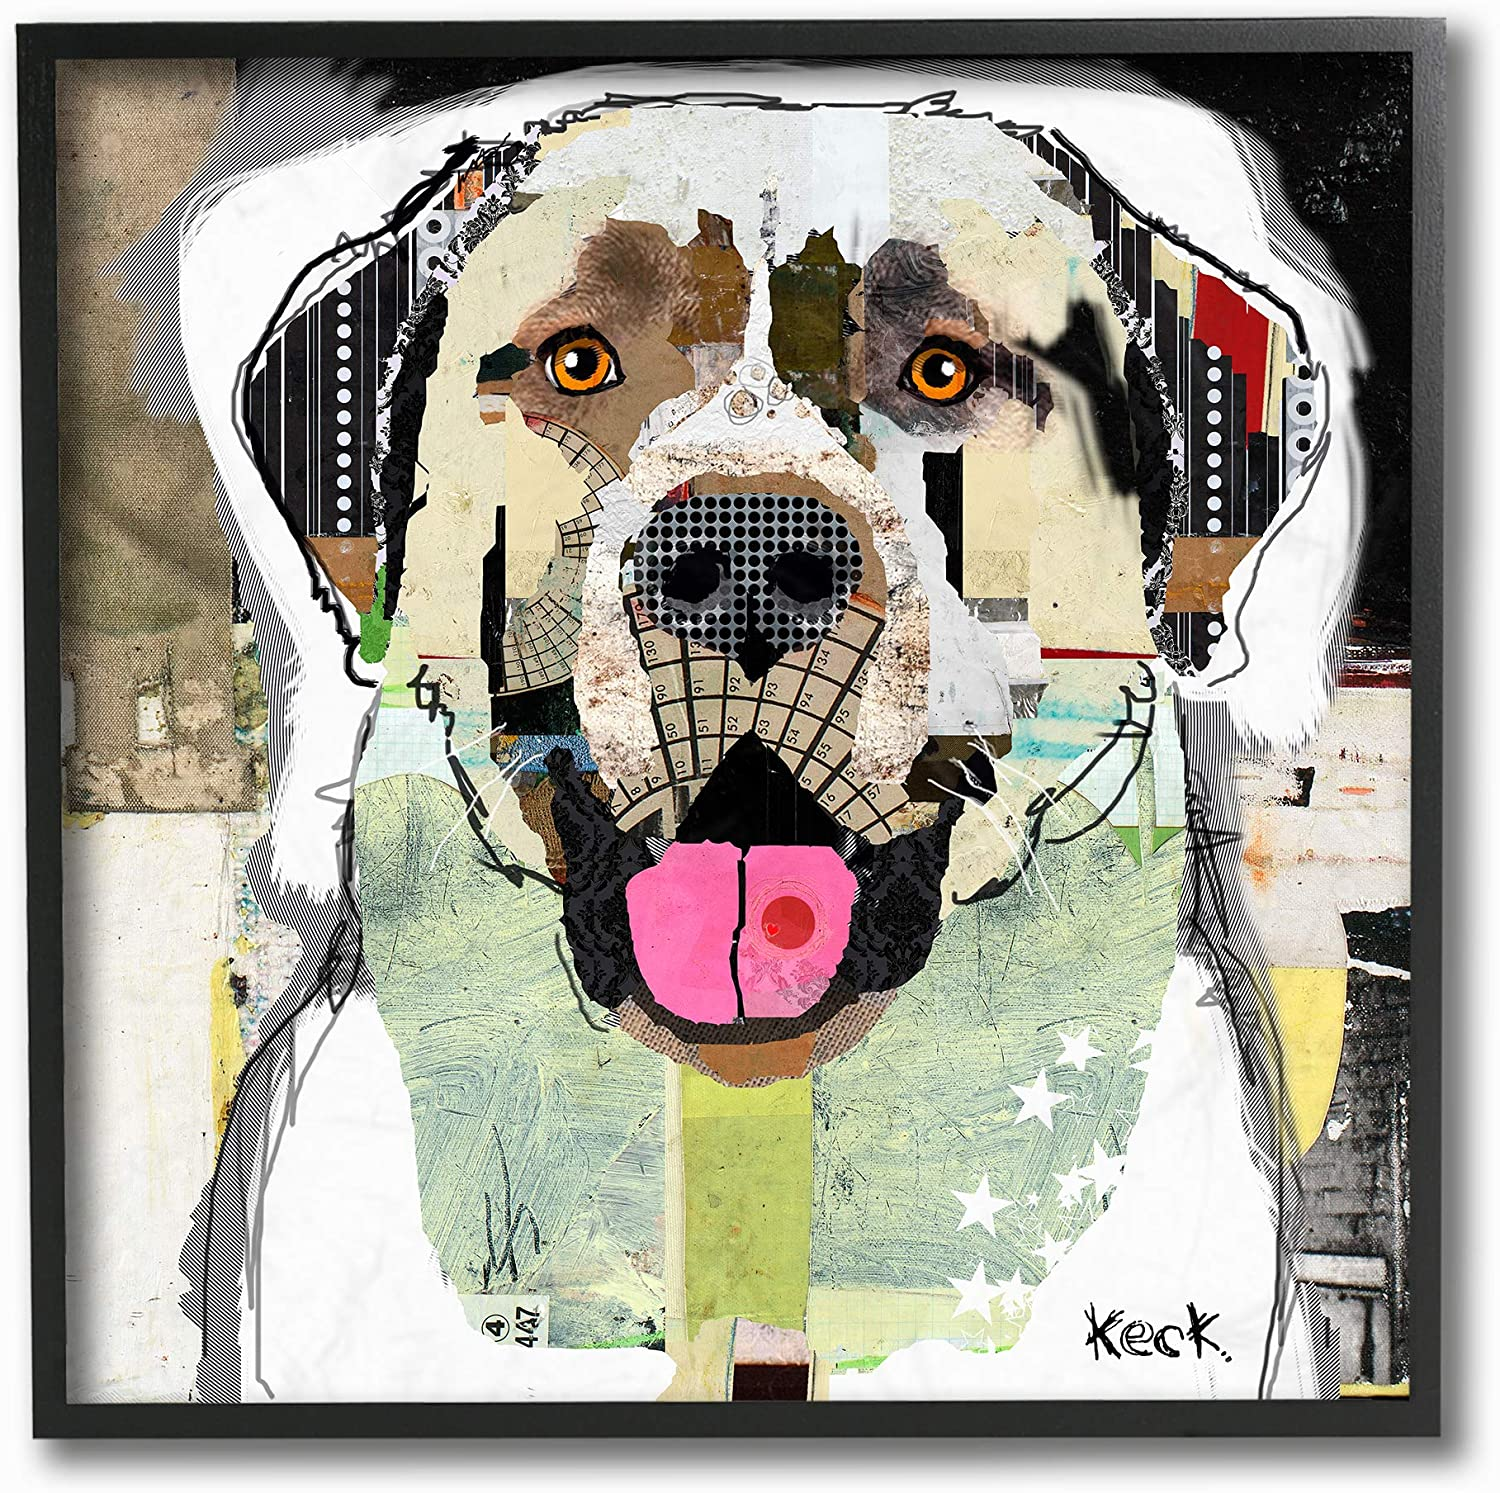 The Stupell Home Decor Paint Splatter color Block Anatolian Shepherd Portrait Framed Giclee Texturized Art, 12 X 12 Multi